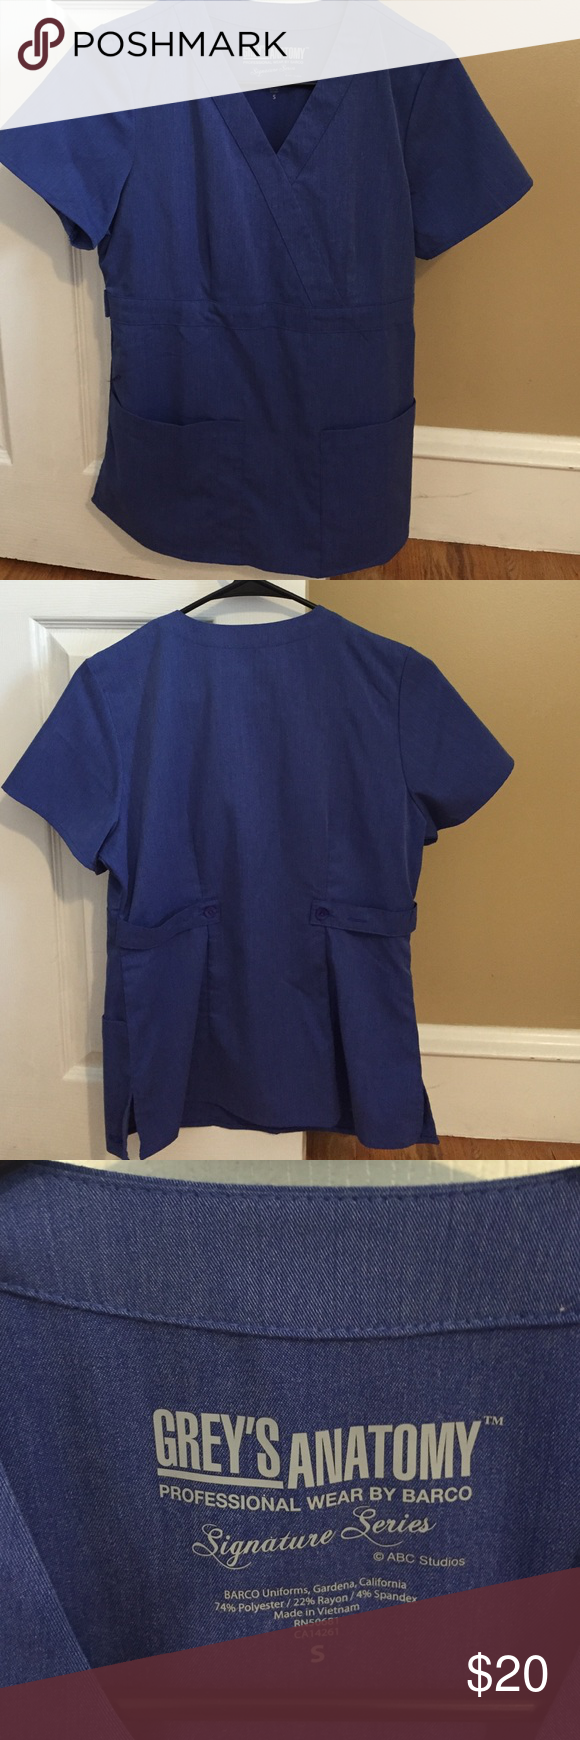 Greys Anatomy Scrub Top | Greys anatomy scrubs, Scrub tops and Times